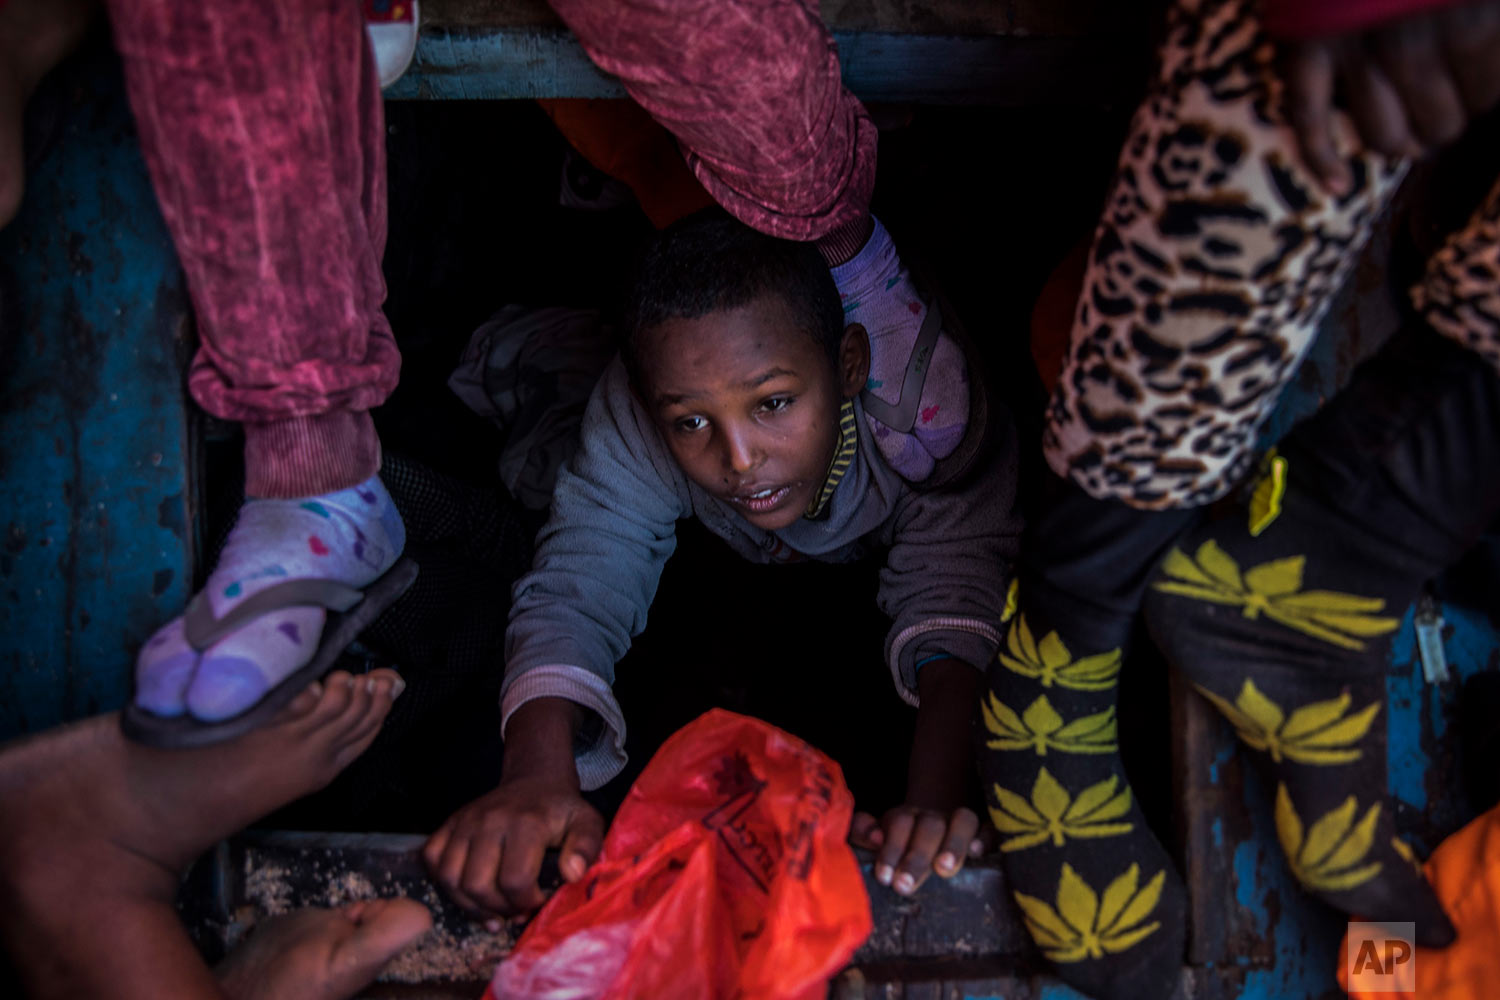 In this Tuesday, Jan. 16, 2018 photo a boy from Eritrea tries to leave the lower deck of a wooden boat with 450 people on aboard, as they were trying to leave the Libyan coast and reach European soil, 34 miles north of Kasr-El-Karabulli, Libya. (AP Photo/Santi Palacios)